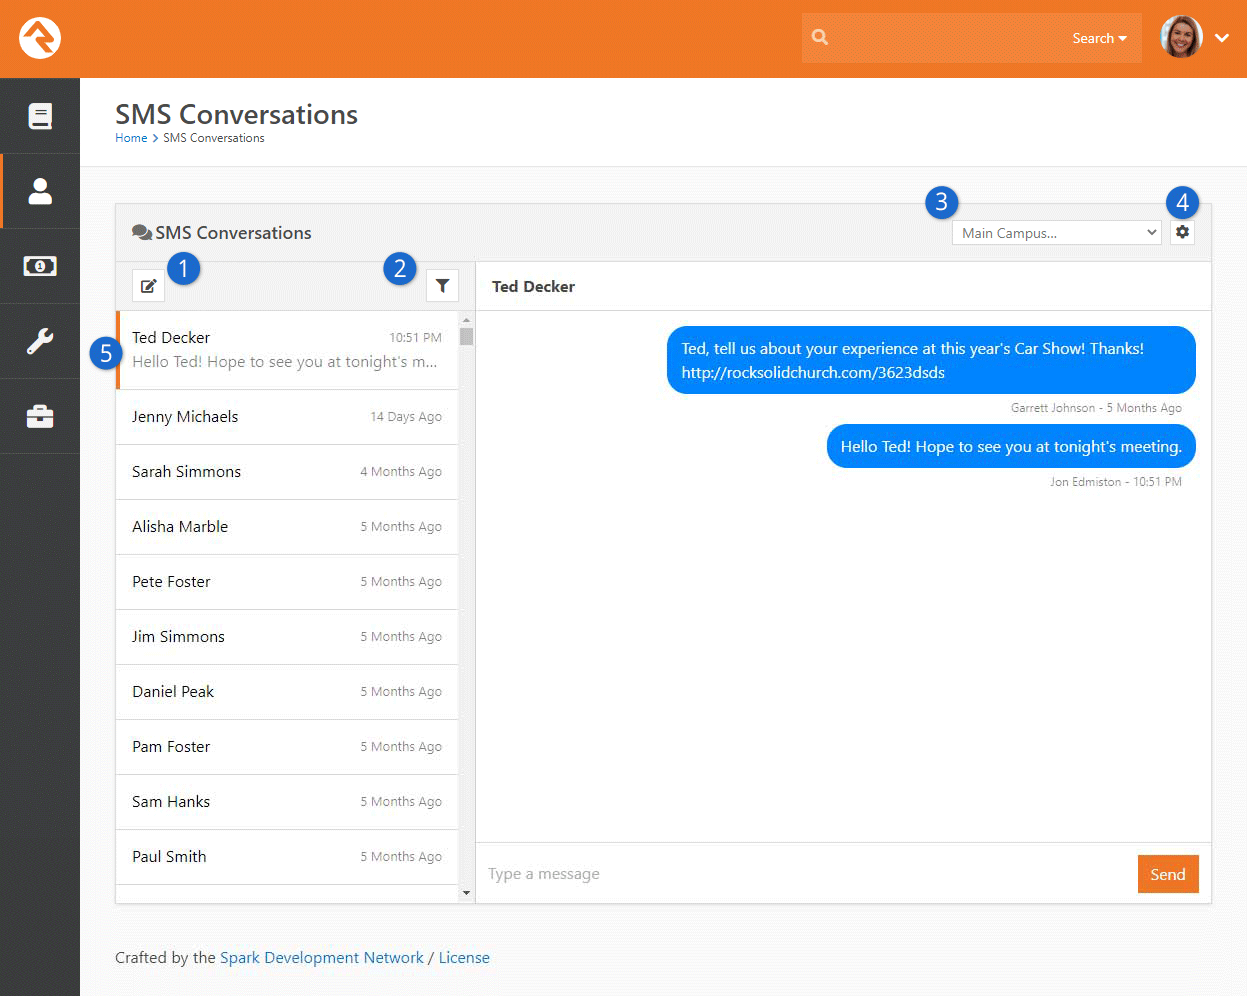 SMS Conversation Page